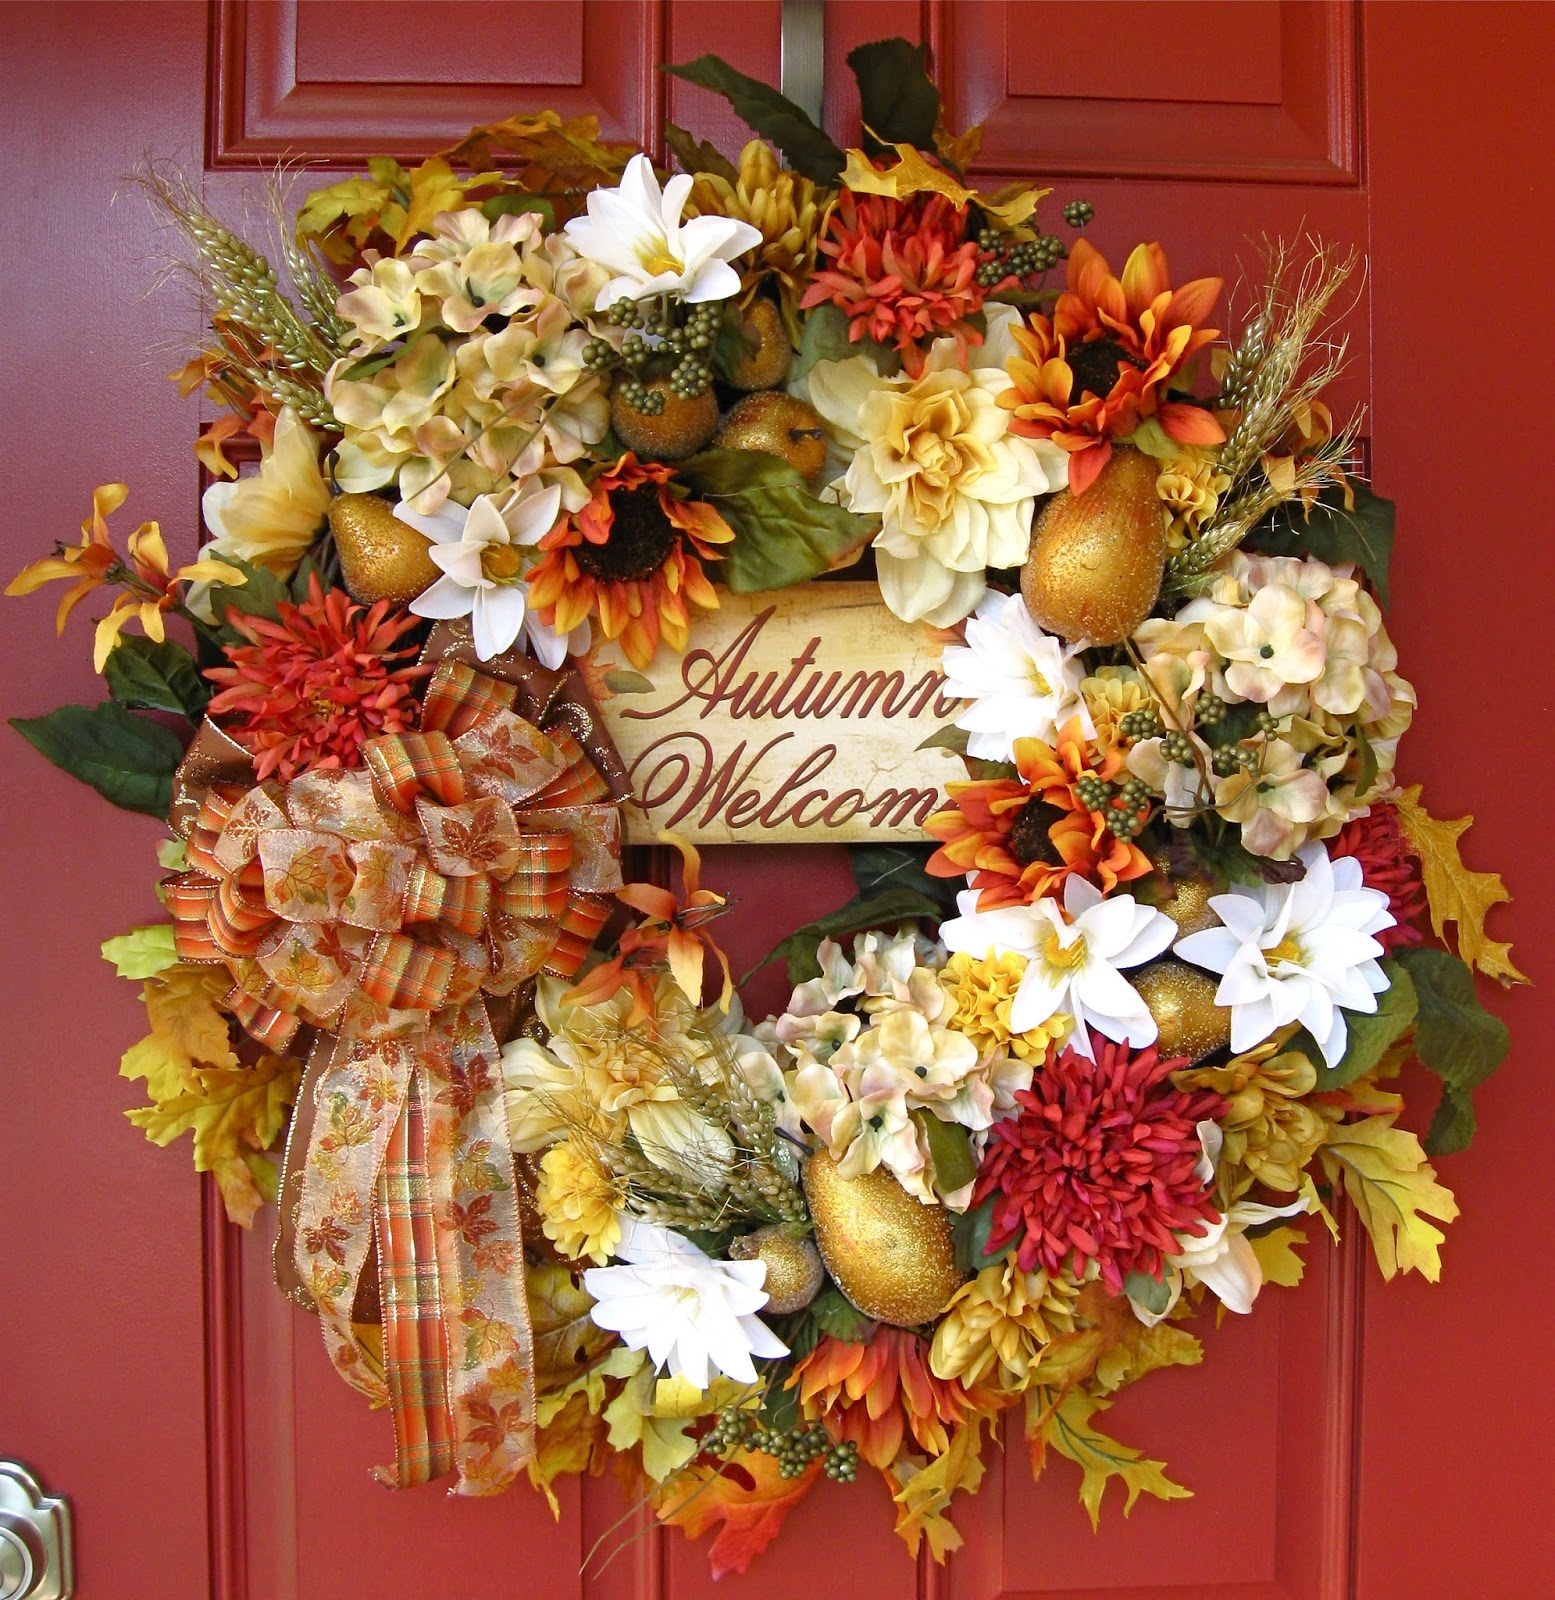 Welcome to the Lighter Side of Autumn Wreath